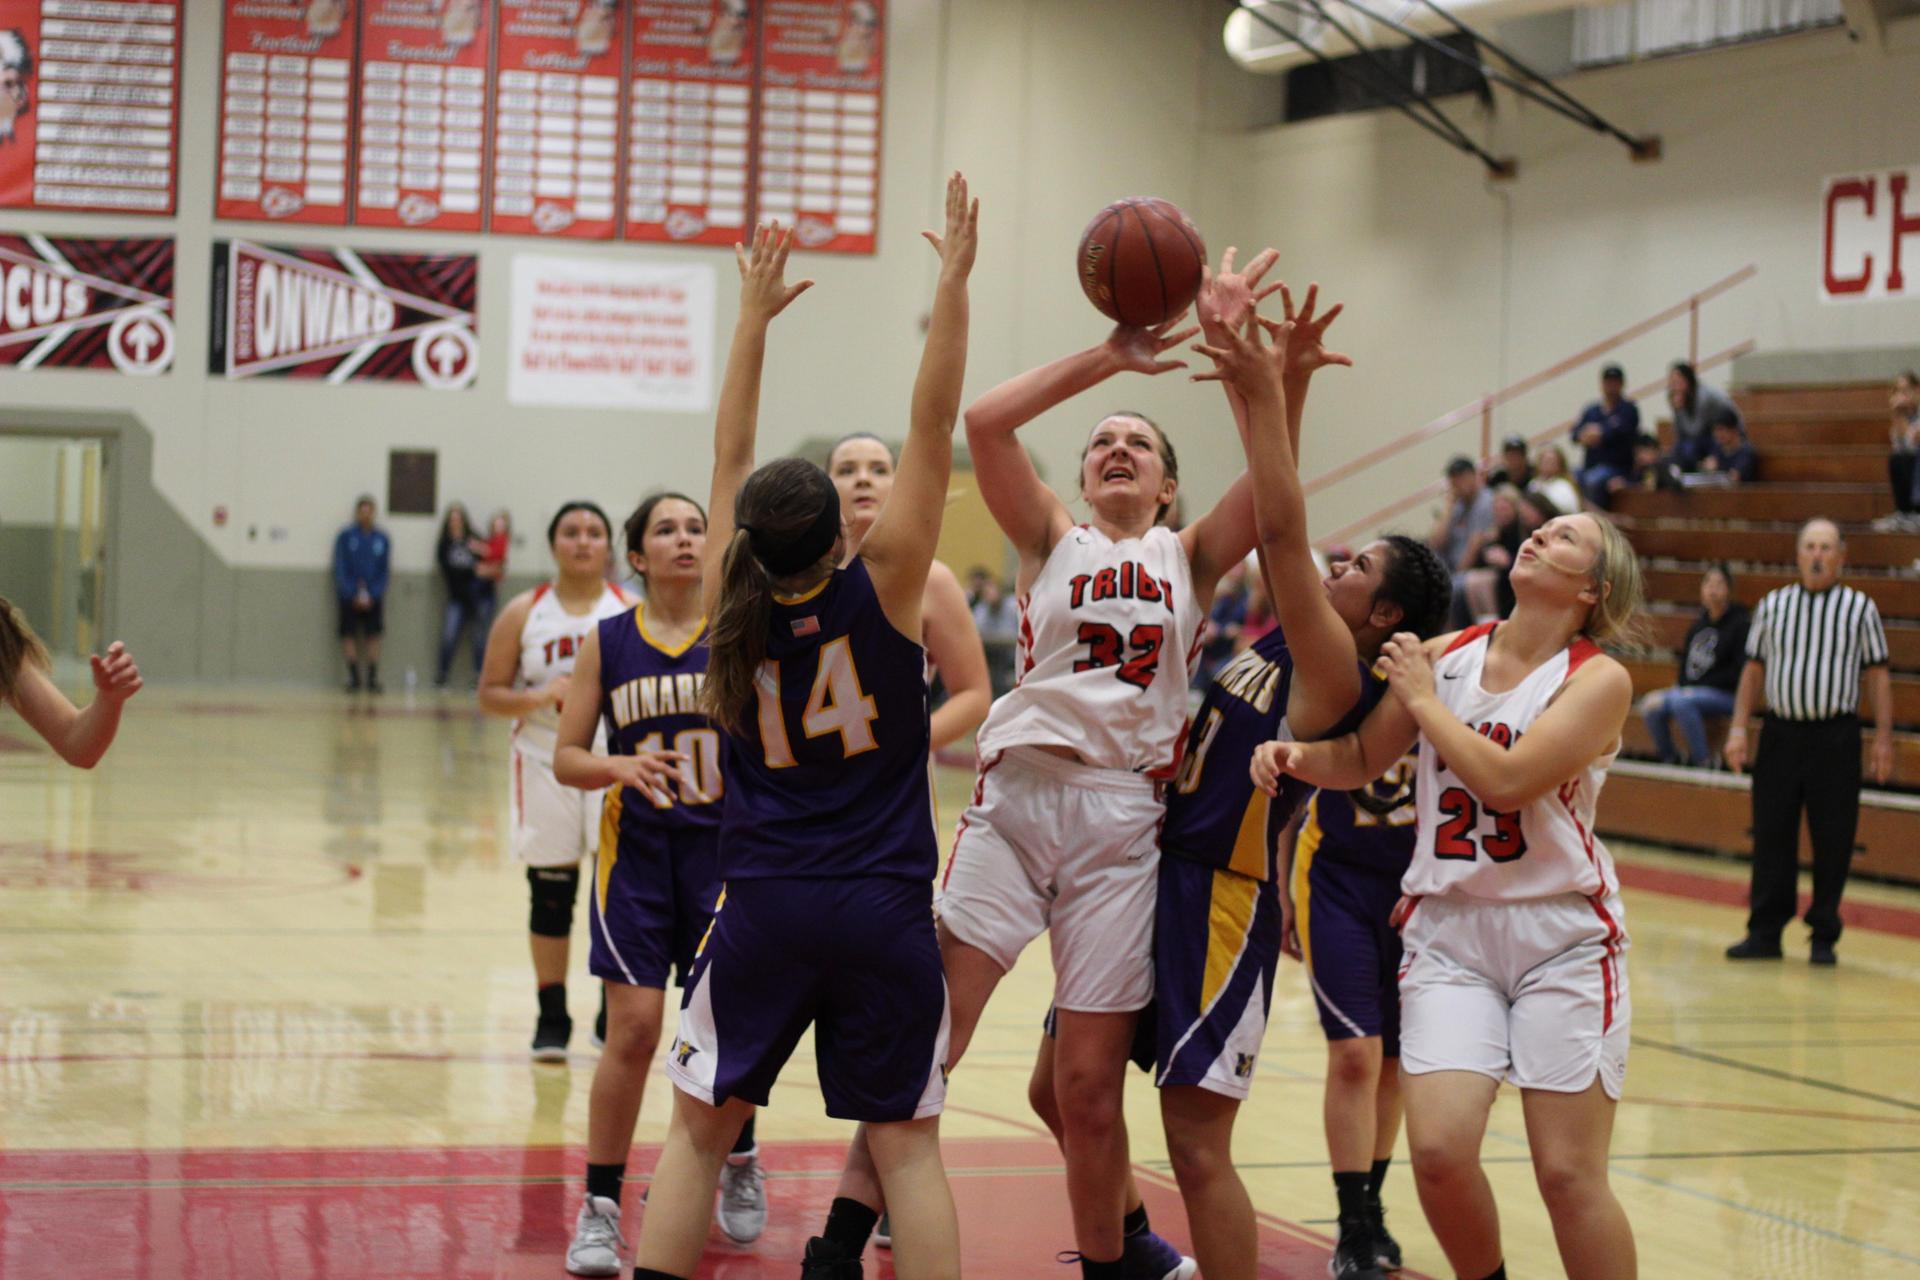 Hannah Stockton shooting the ball